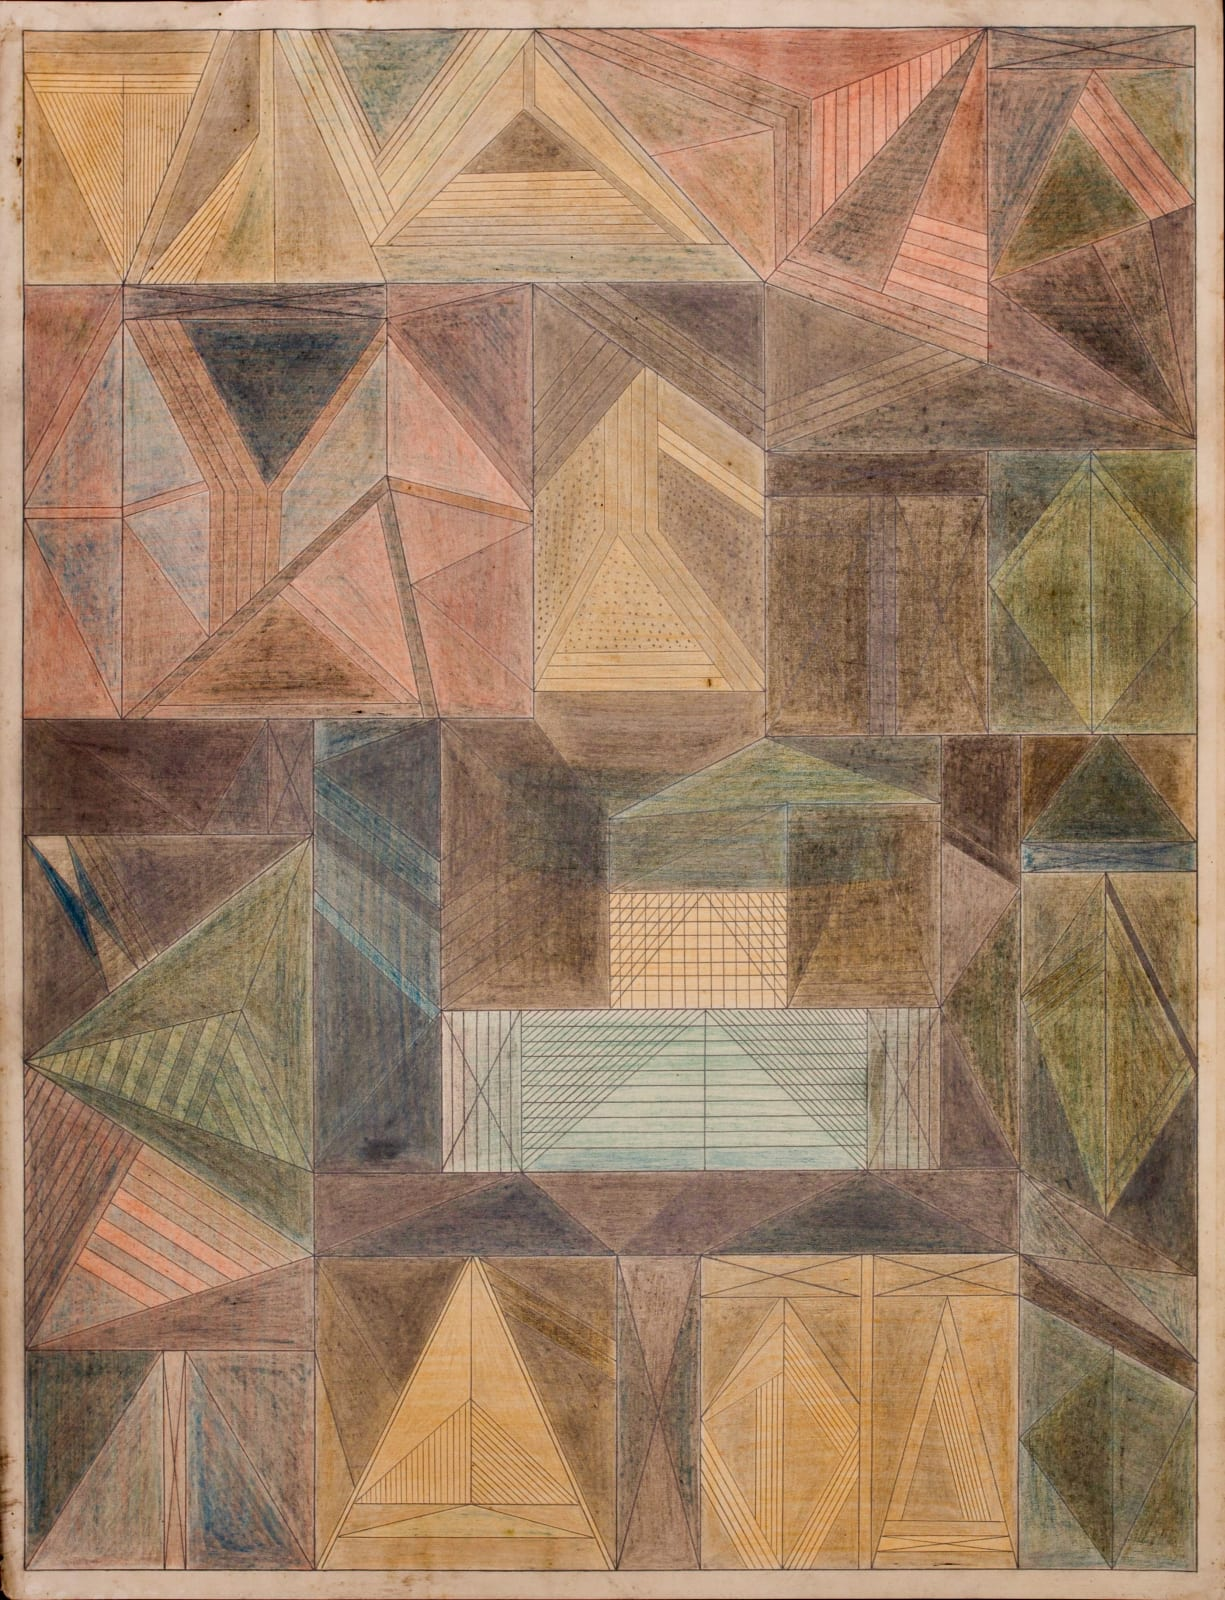 Untitled, ca. 1930 - 55 Colored pencil and graphite on paper 21 x 17 1/2 in. 53.3 x 44.5 cm. (DG 43)